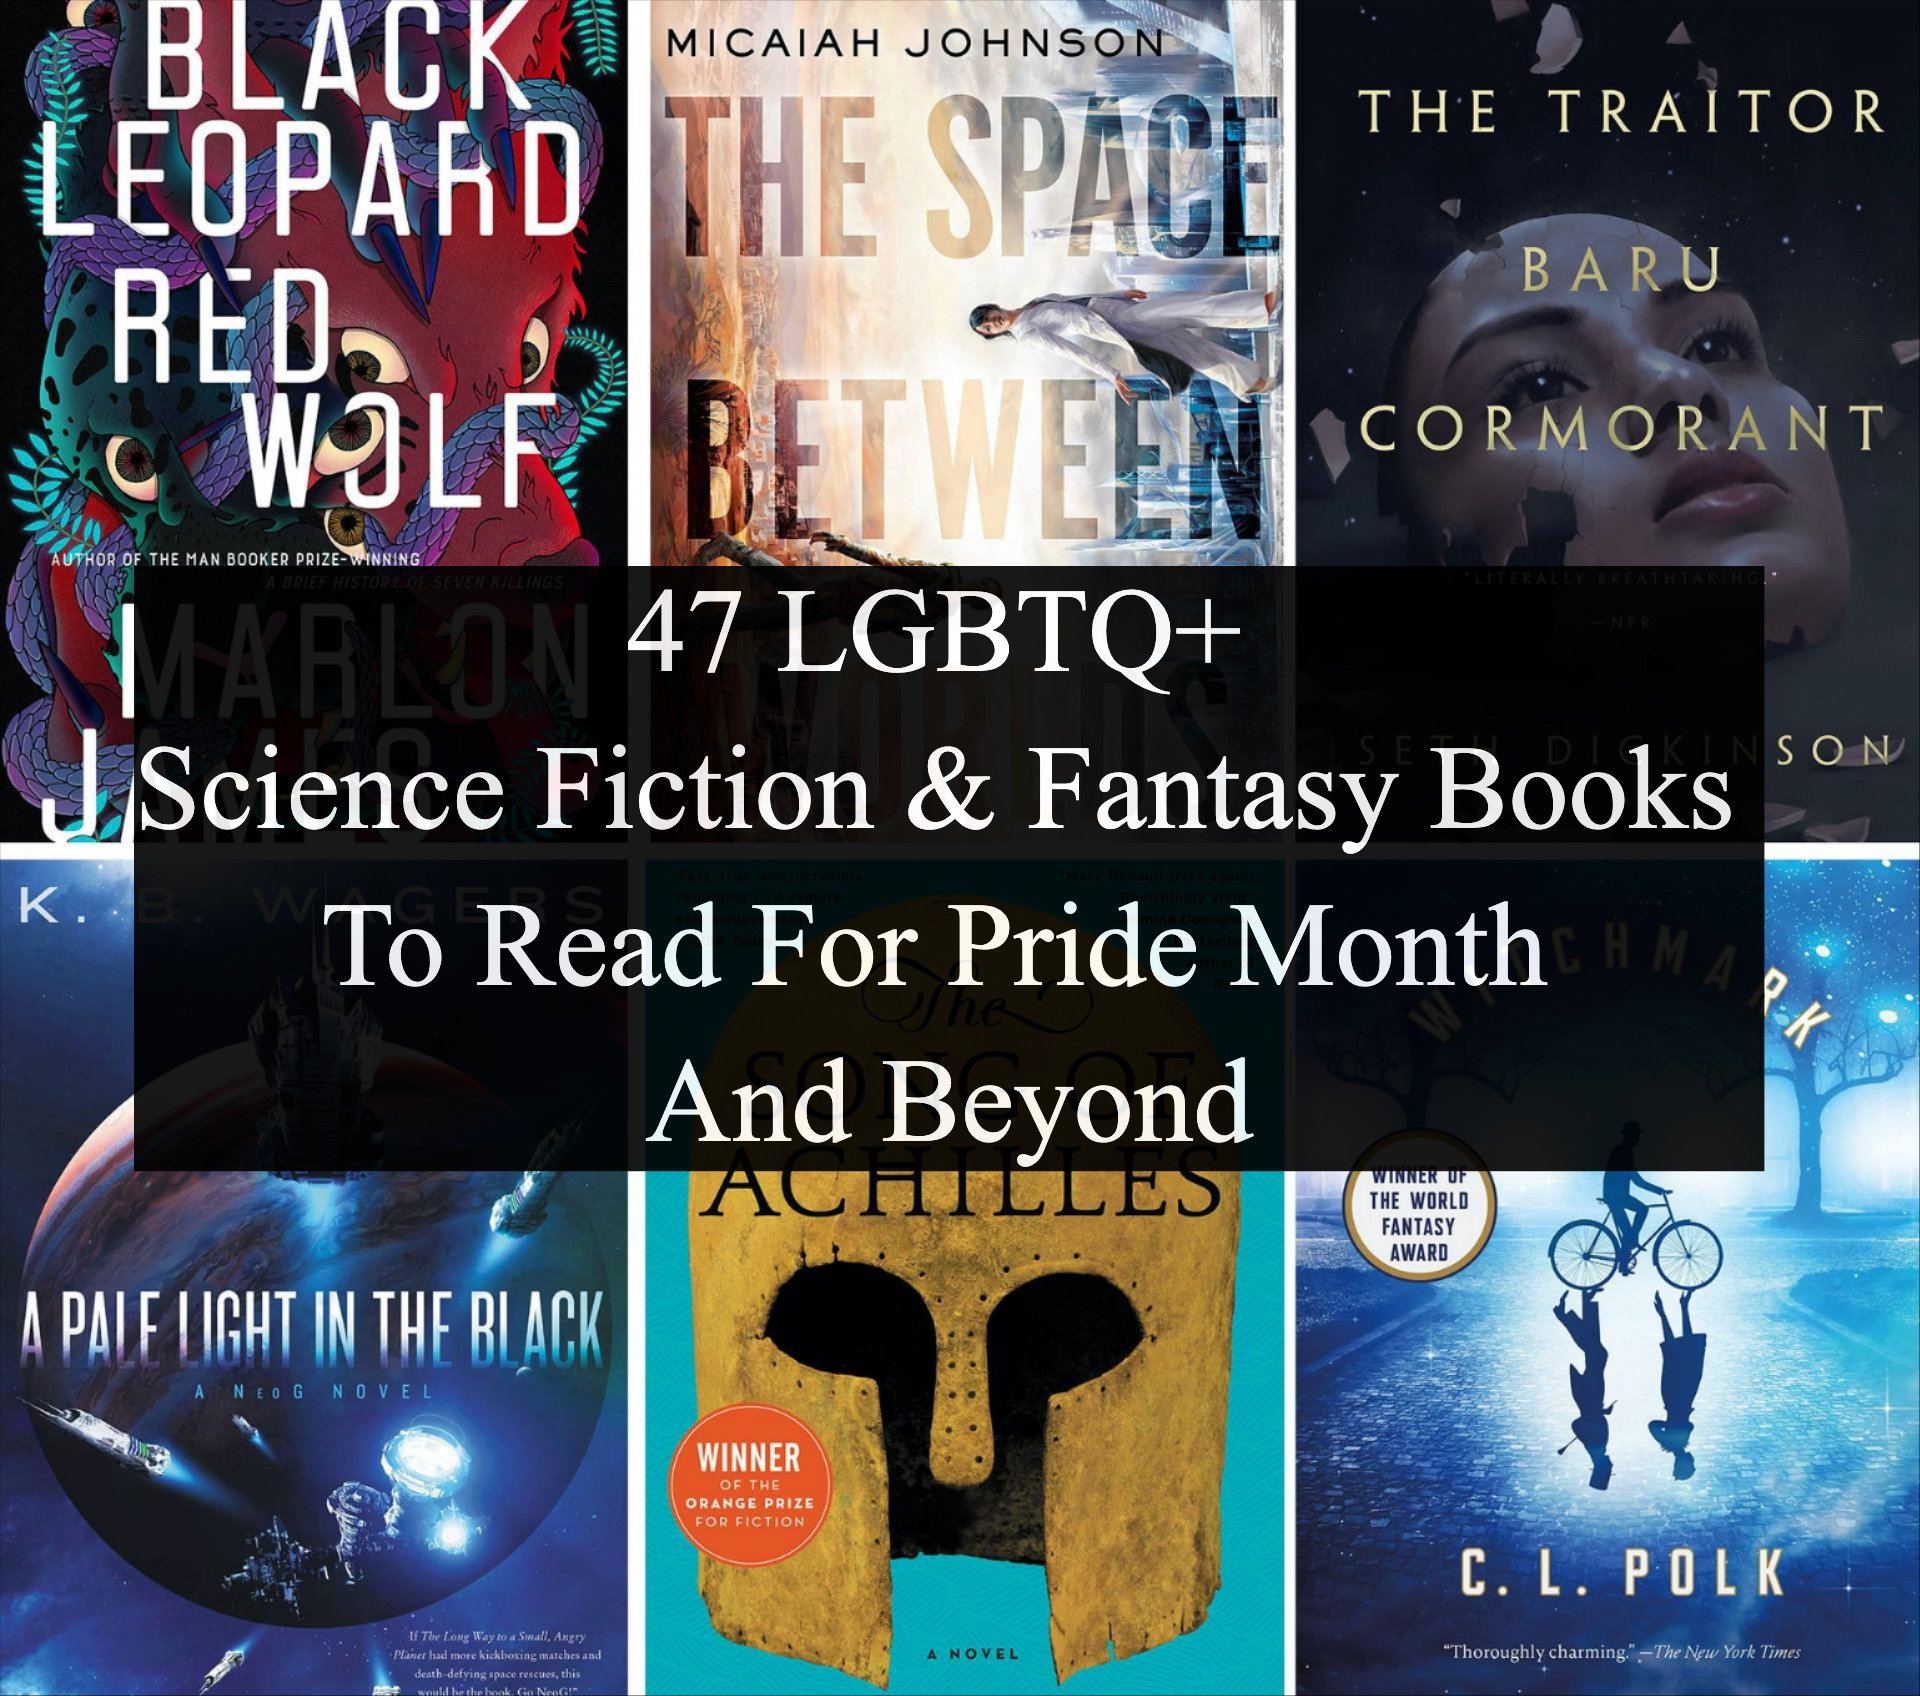 Grid of six book covers with text overlay: ''47 LGBTQ+ Science Fiction & Fantasy Books To Read For Pride Month And Beyond''